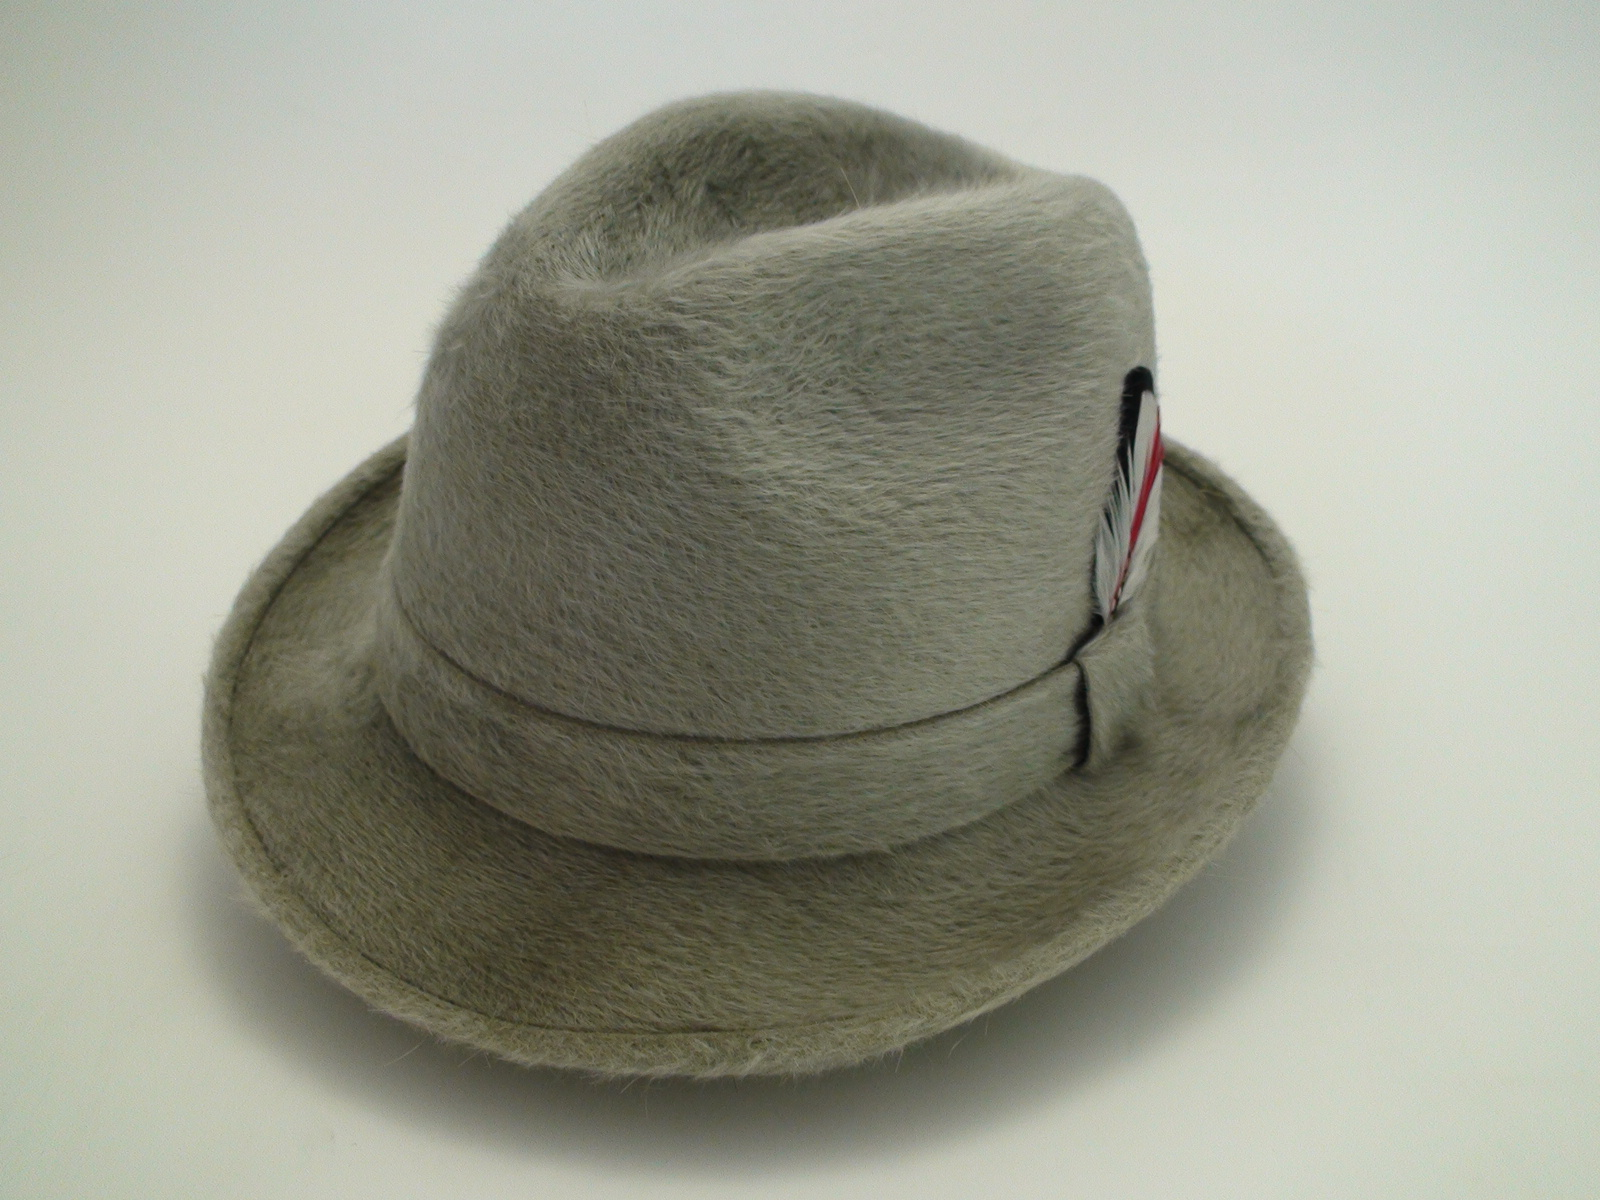 e8a2937586dcf Stetson The Playboy Canadian Beaver De Luxe Finish Silver Fedora Hat